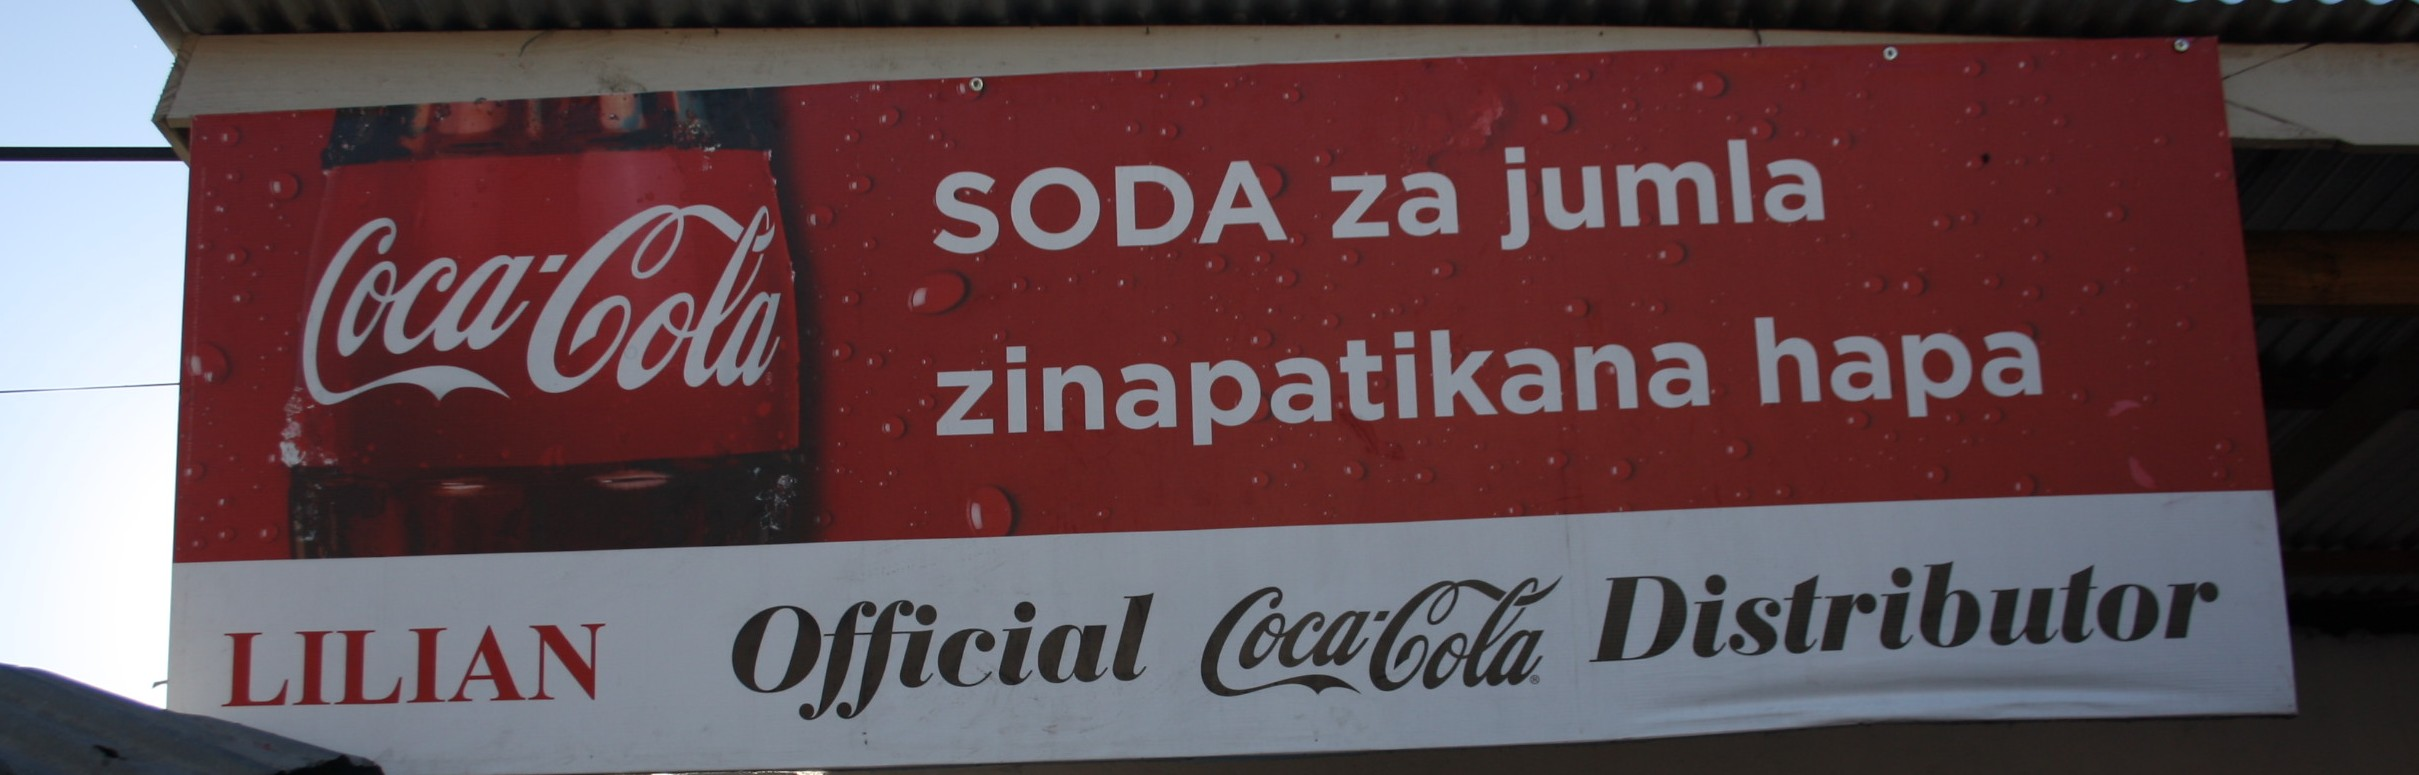 Tanzanian Trip - Part One - Coca Cola's Intiatives - Harassed but